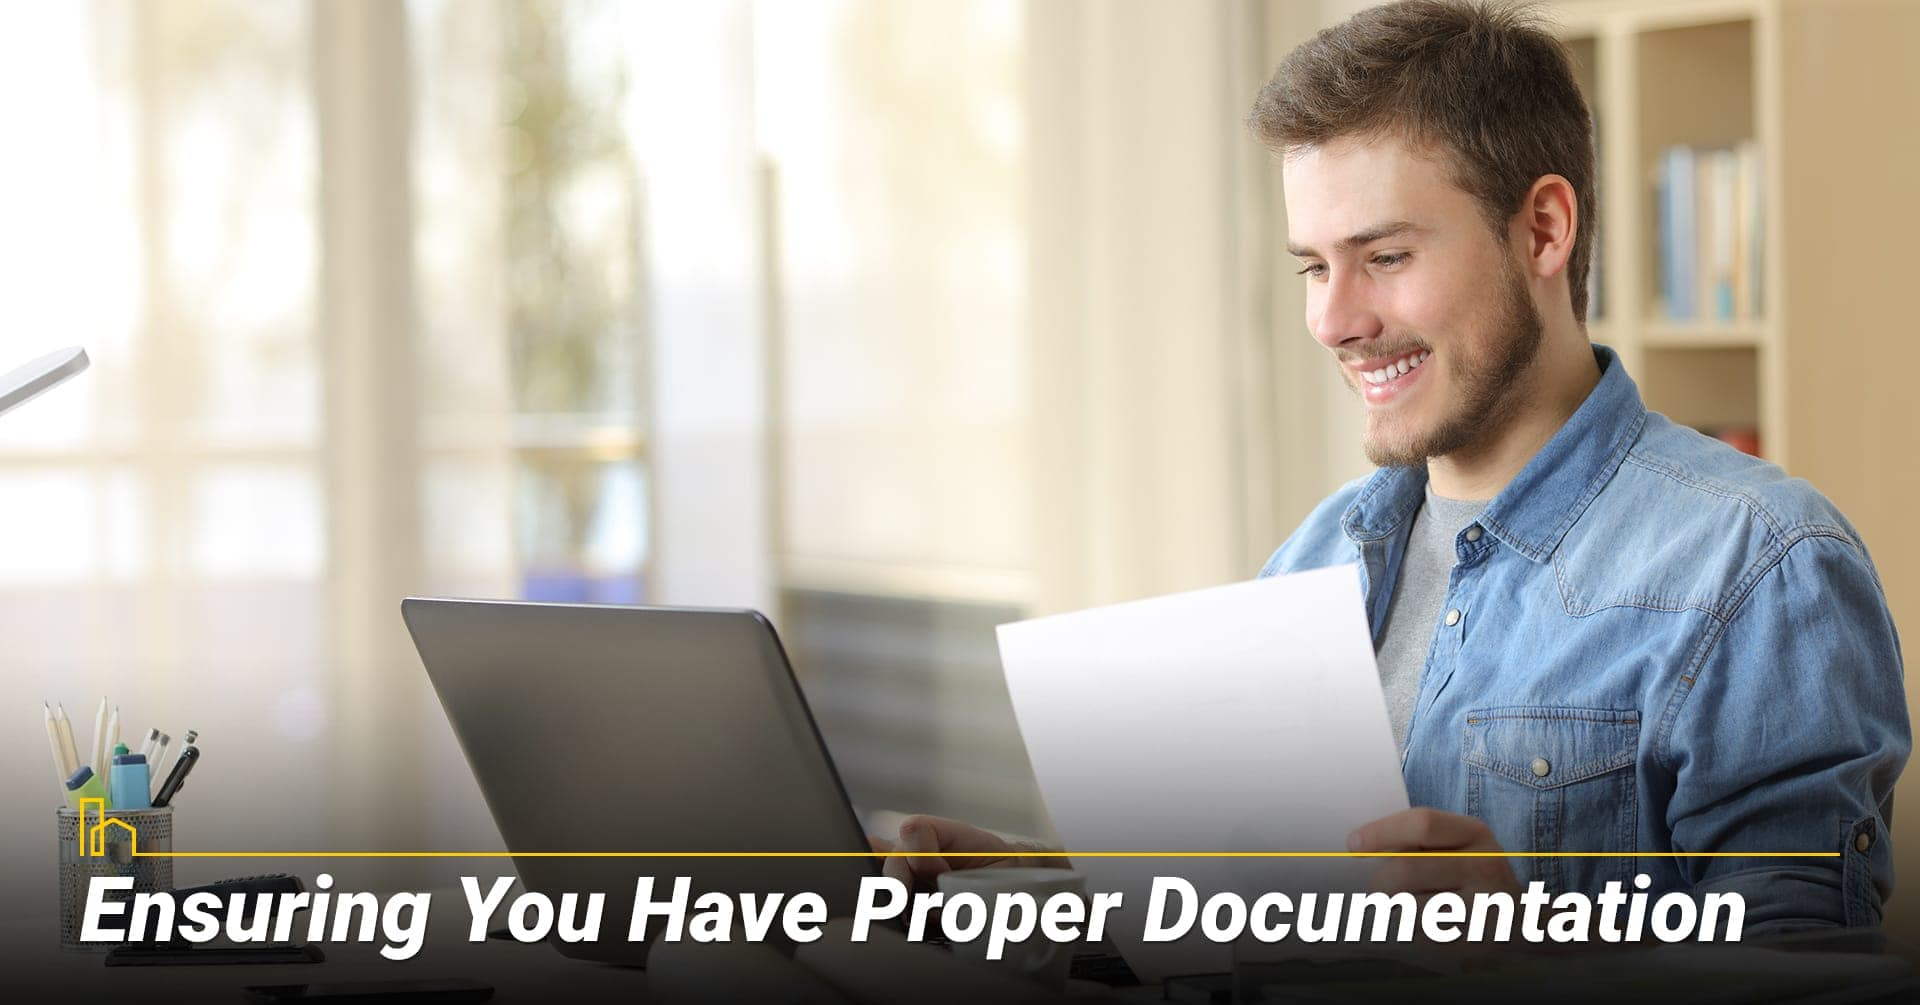 Ensuring You Have Proper Documentation, check for all documentations